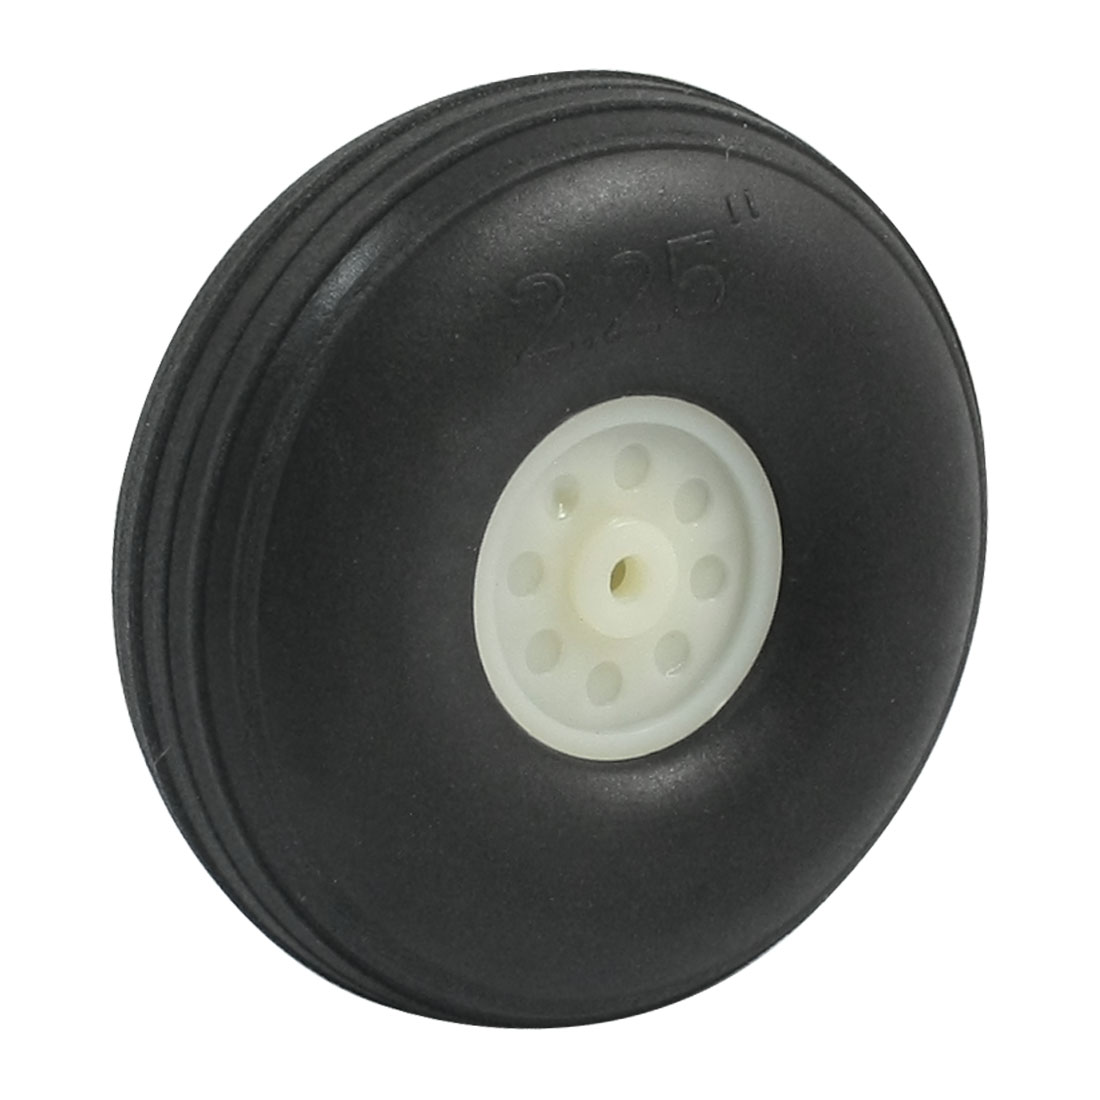 "DIY RC Airplane Plastic Hub 2.25"" Diameter Foam Tire PU Wheel"